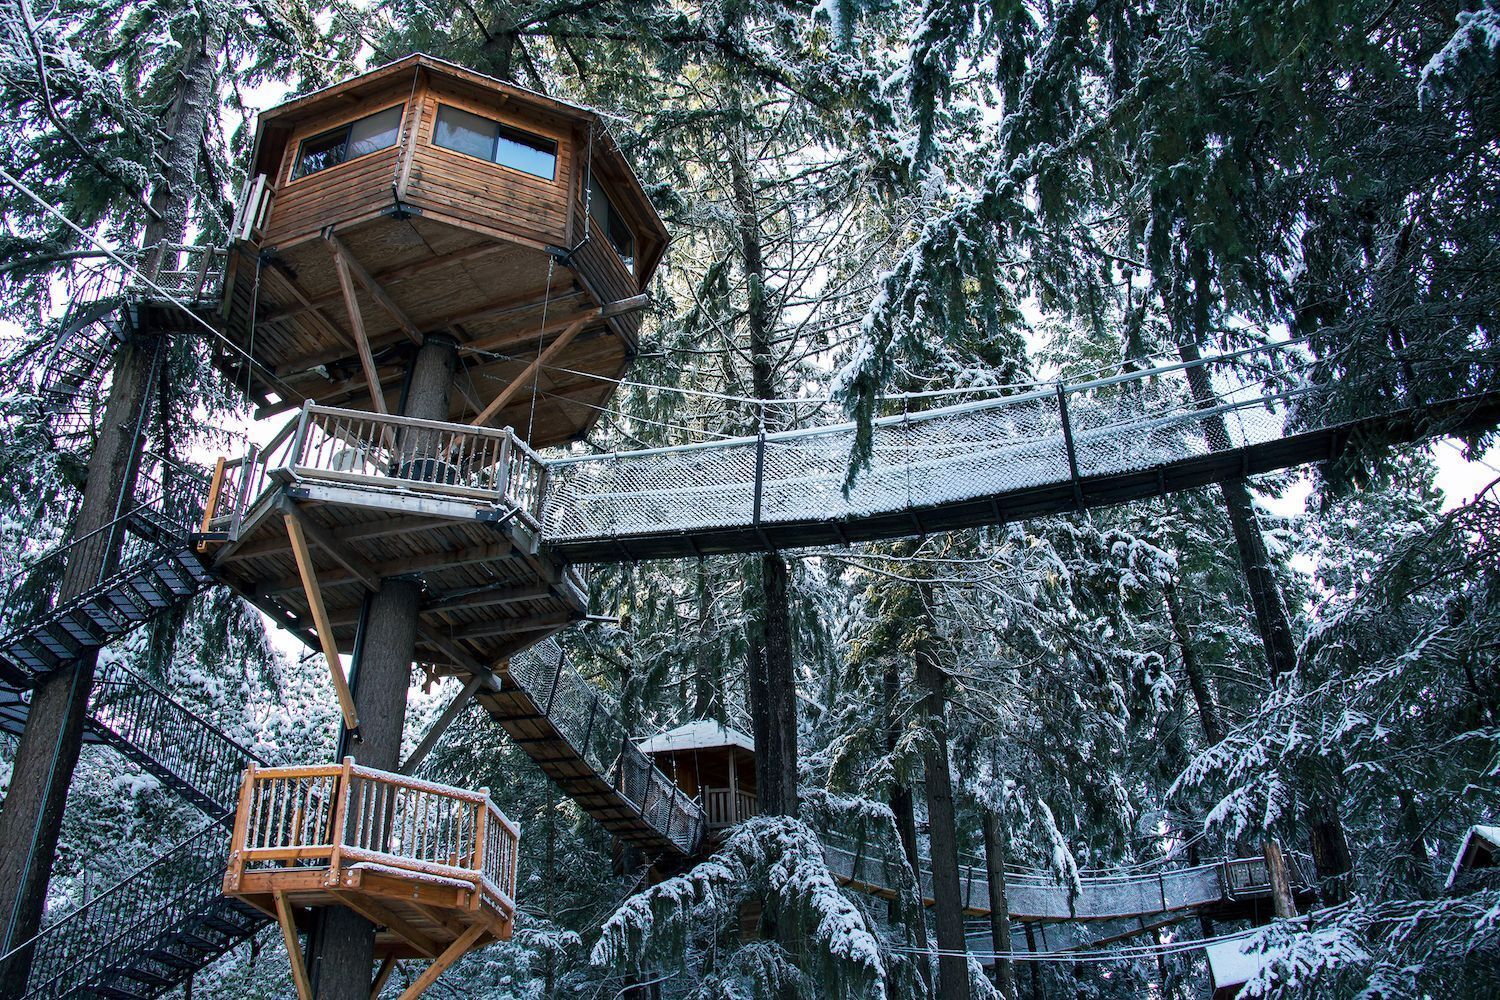 Exterior-majestree-treehouse-most-wishlisted-airbnbs-in-the-pacific-northwest